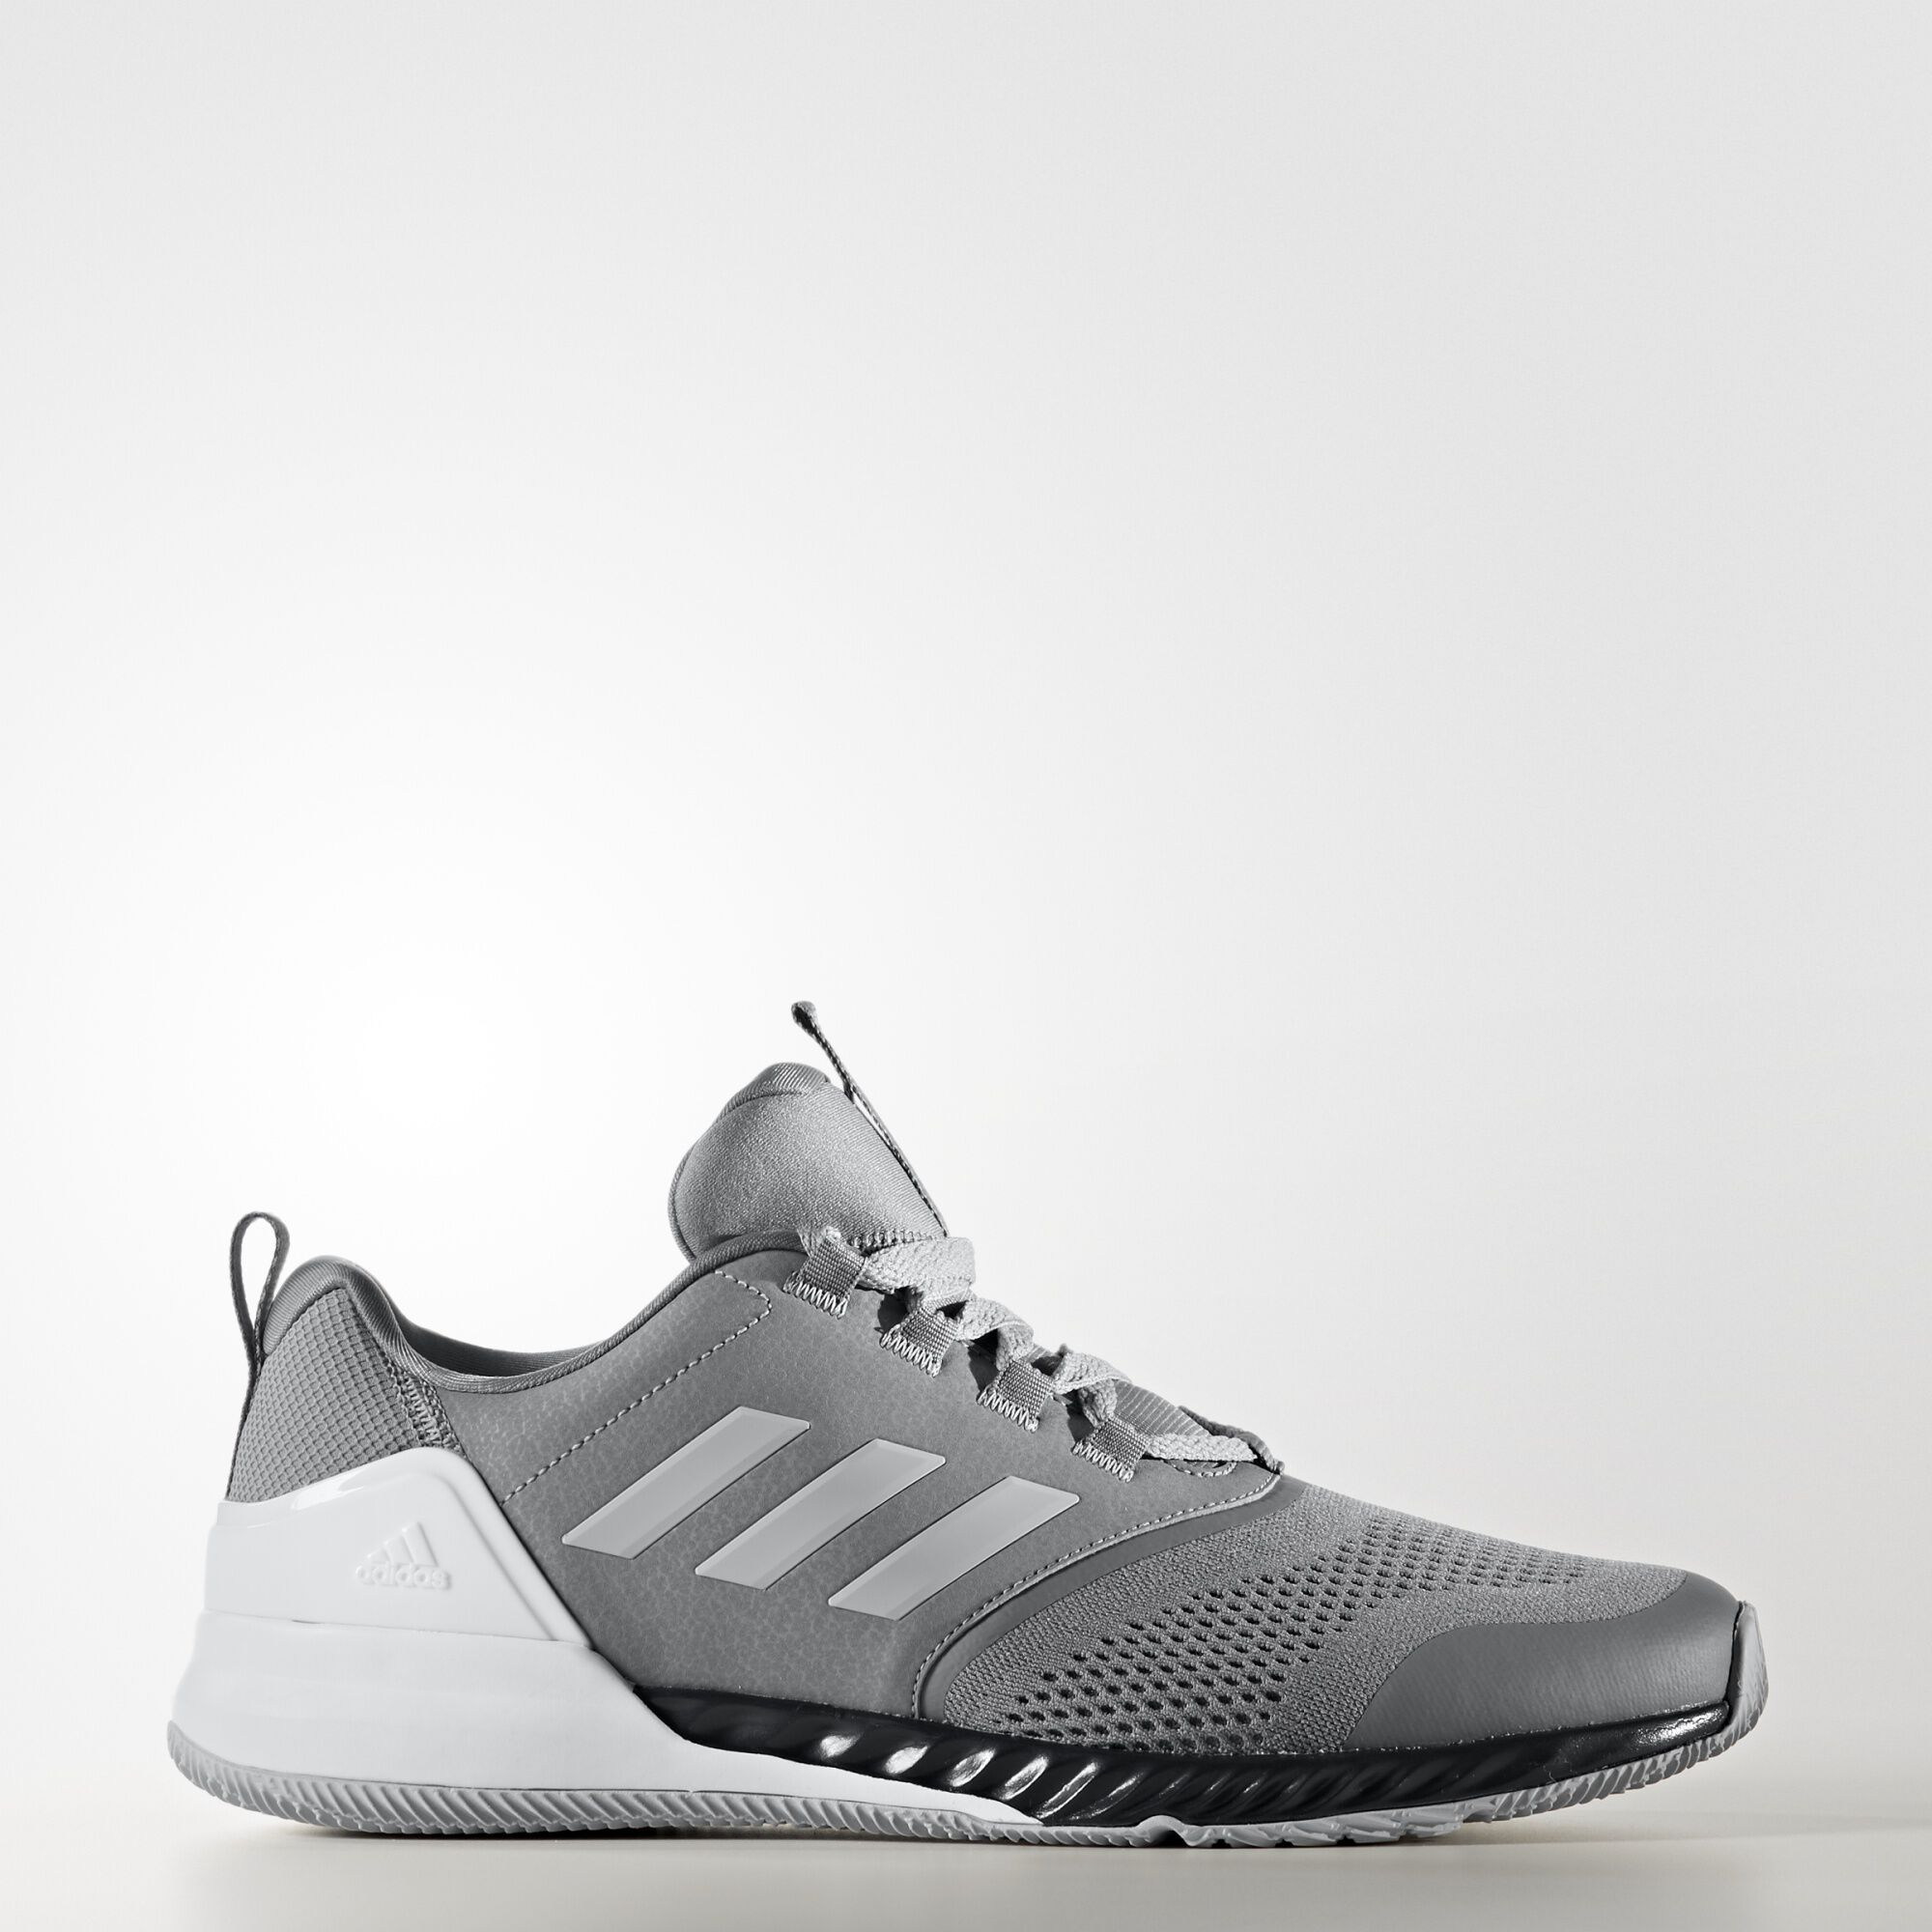 adidas egypt shoes prices 2012